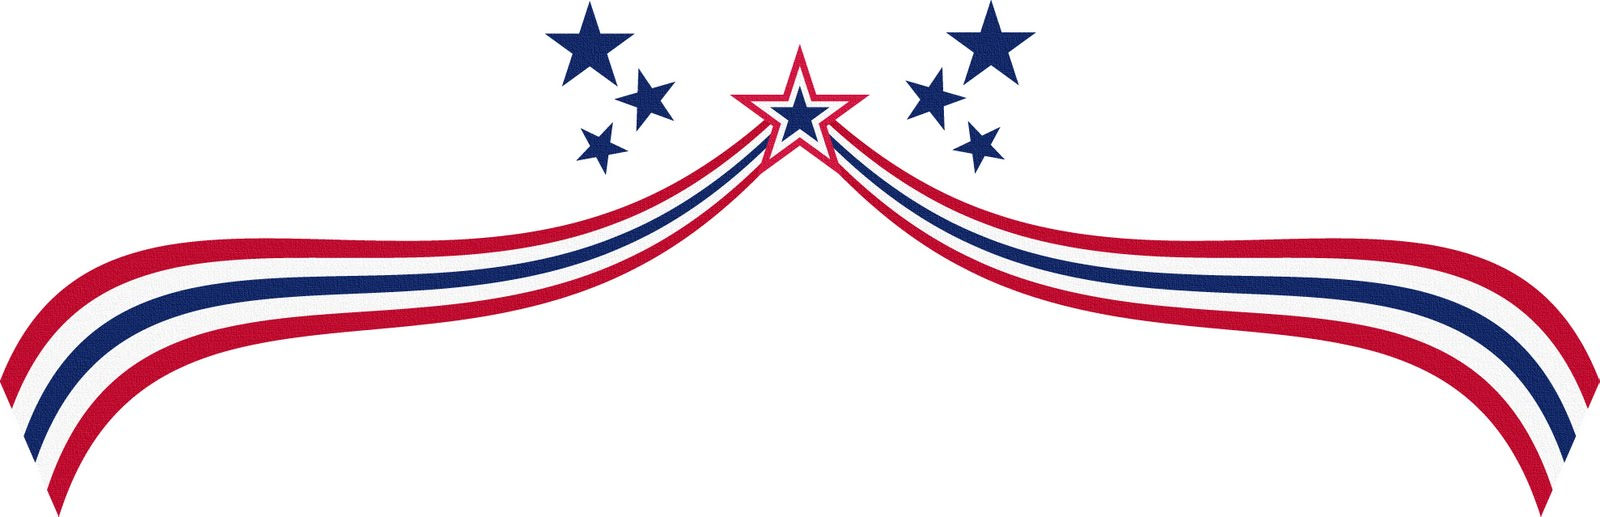 1600x517 Bunting Clipart 4th July